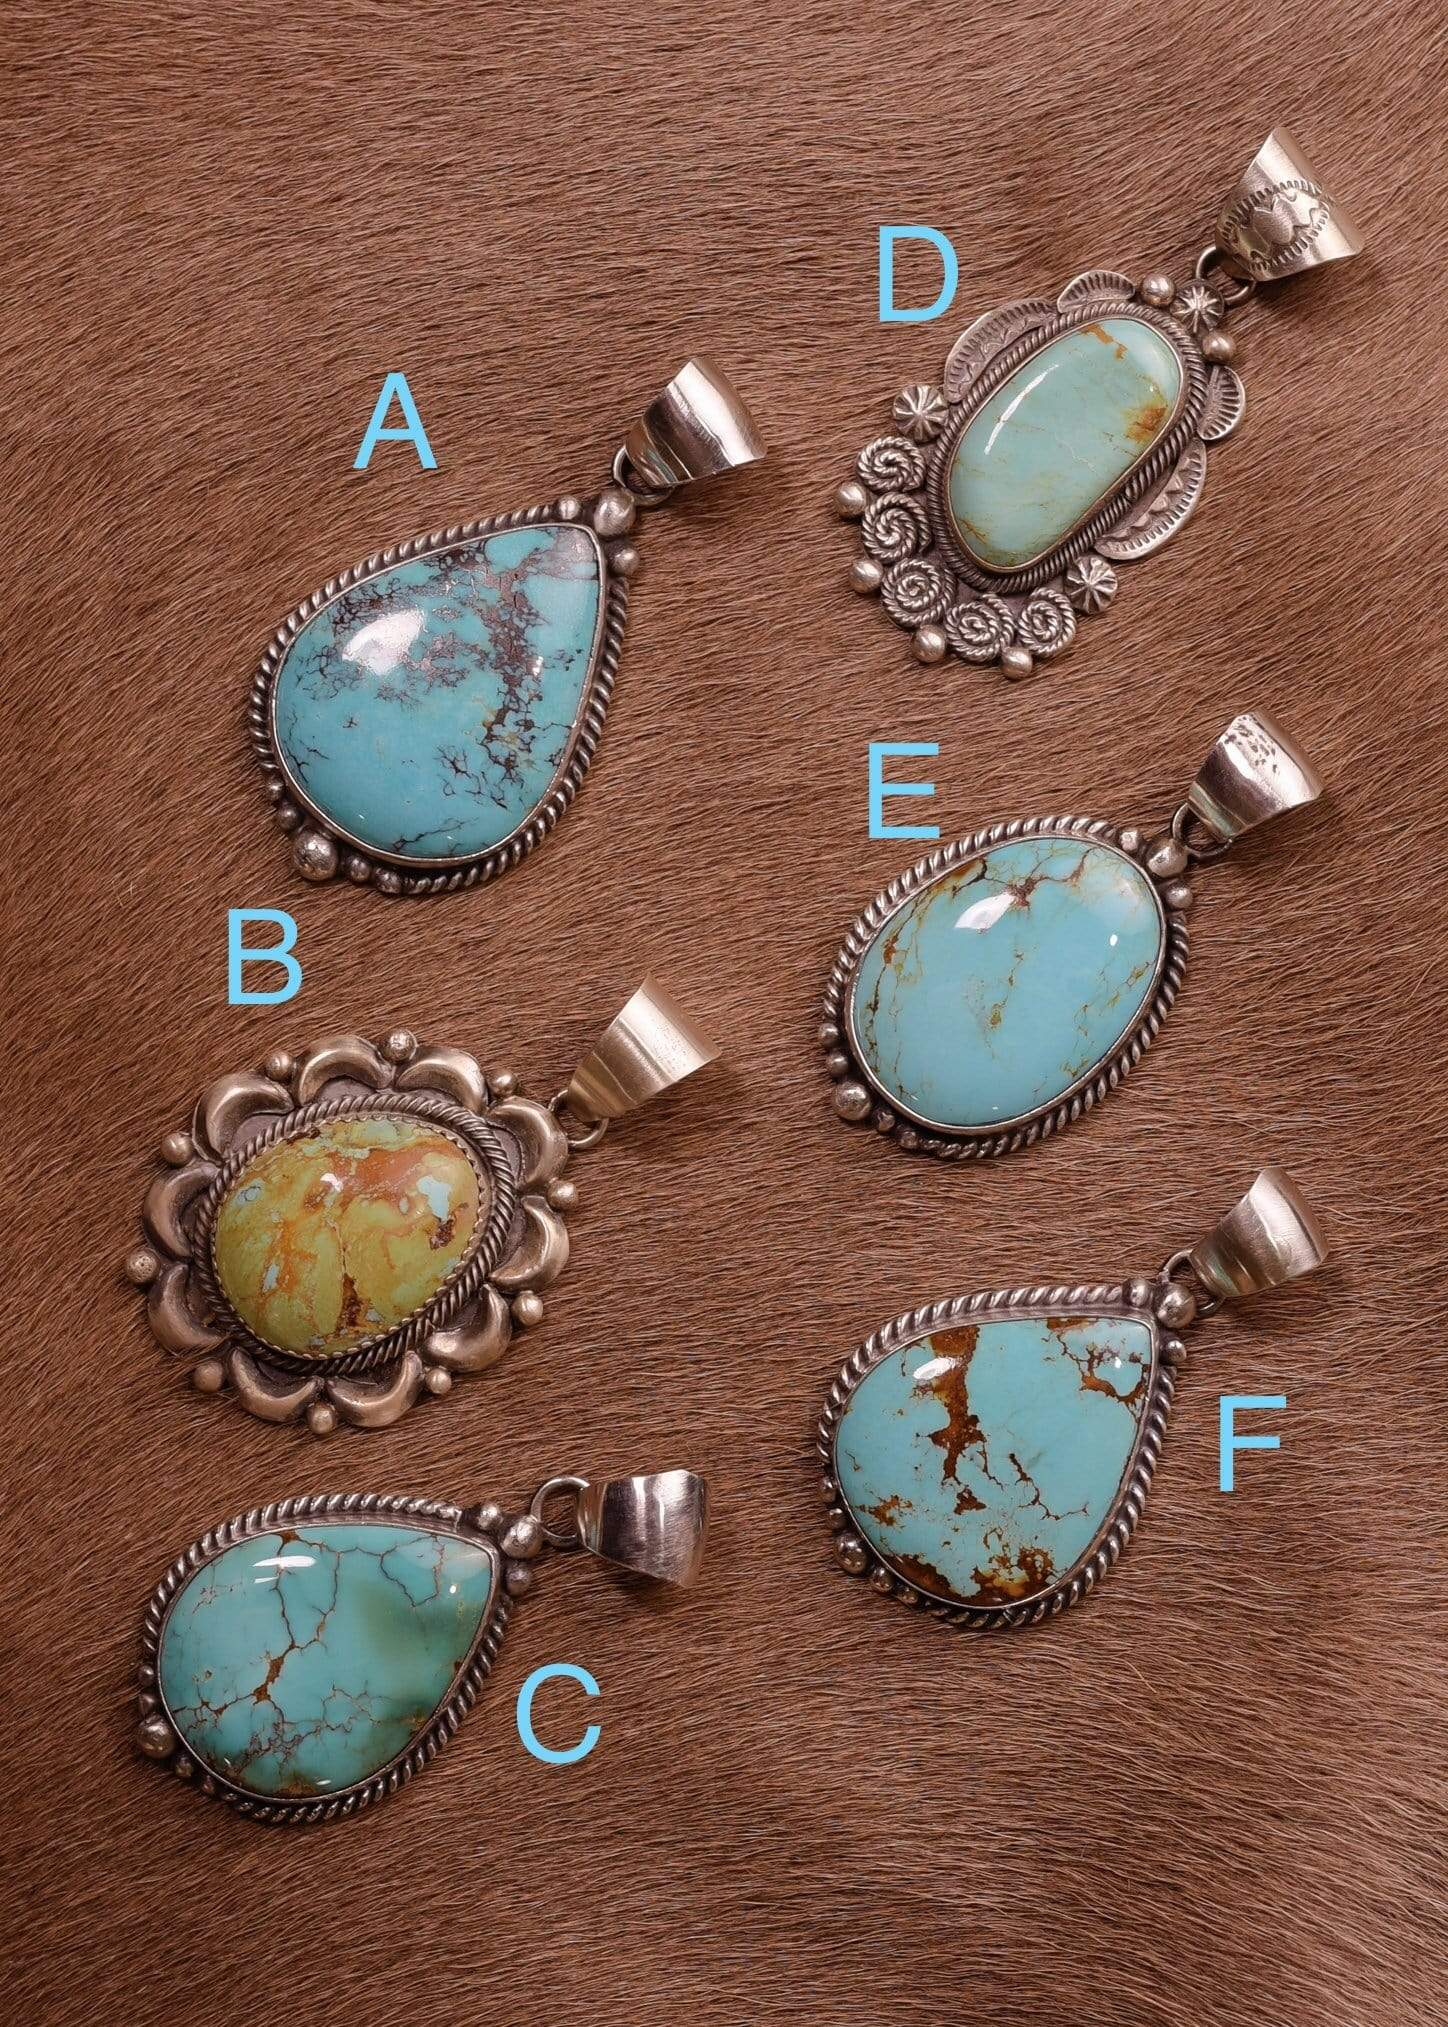 Accessorize In Style Sterling Pendants Sterling Kingman Turquoise Pendants A - F